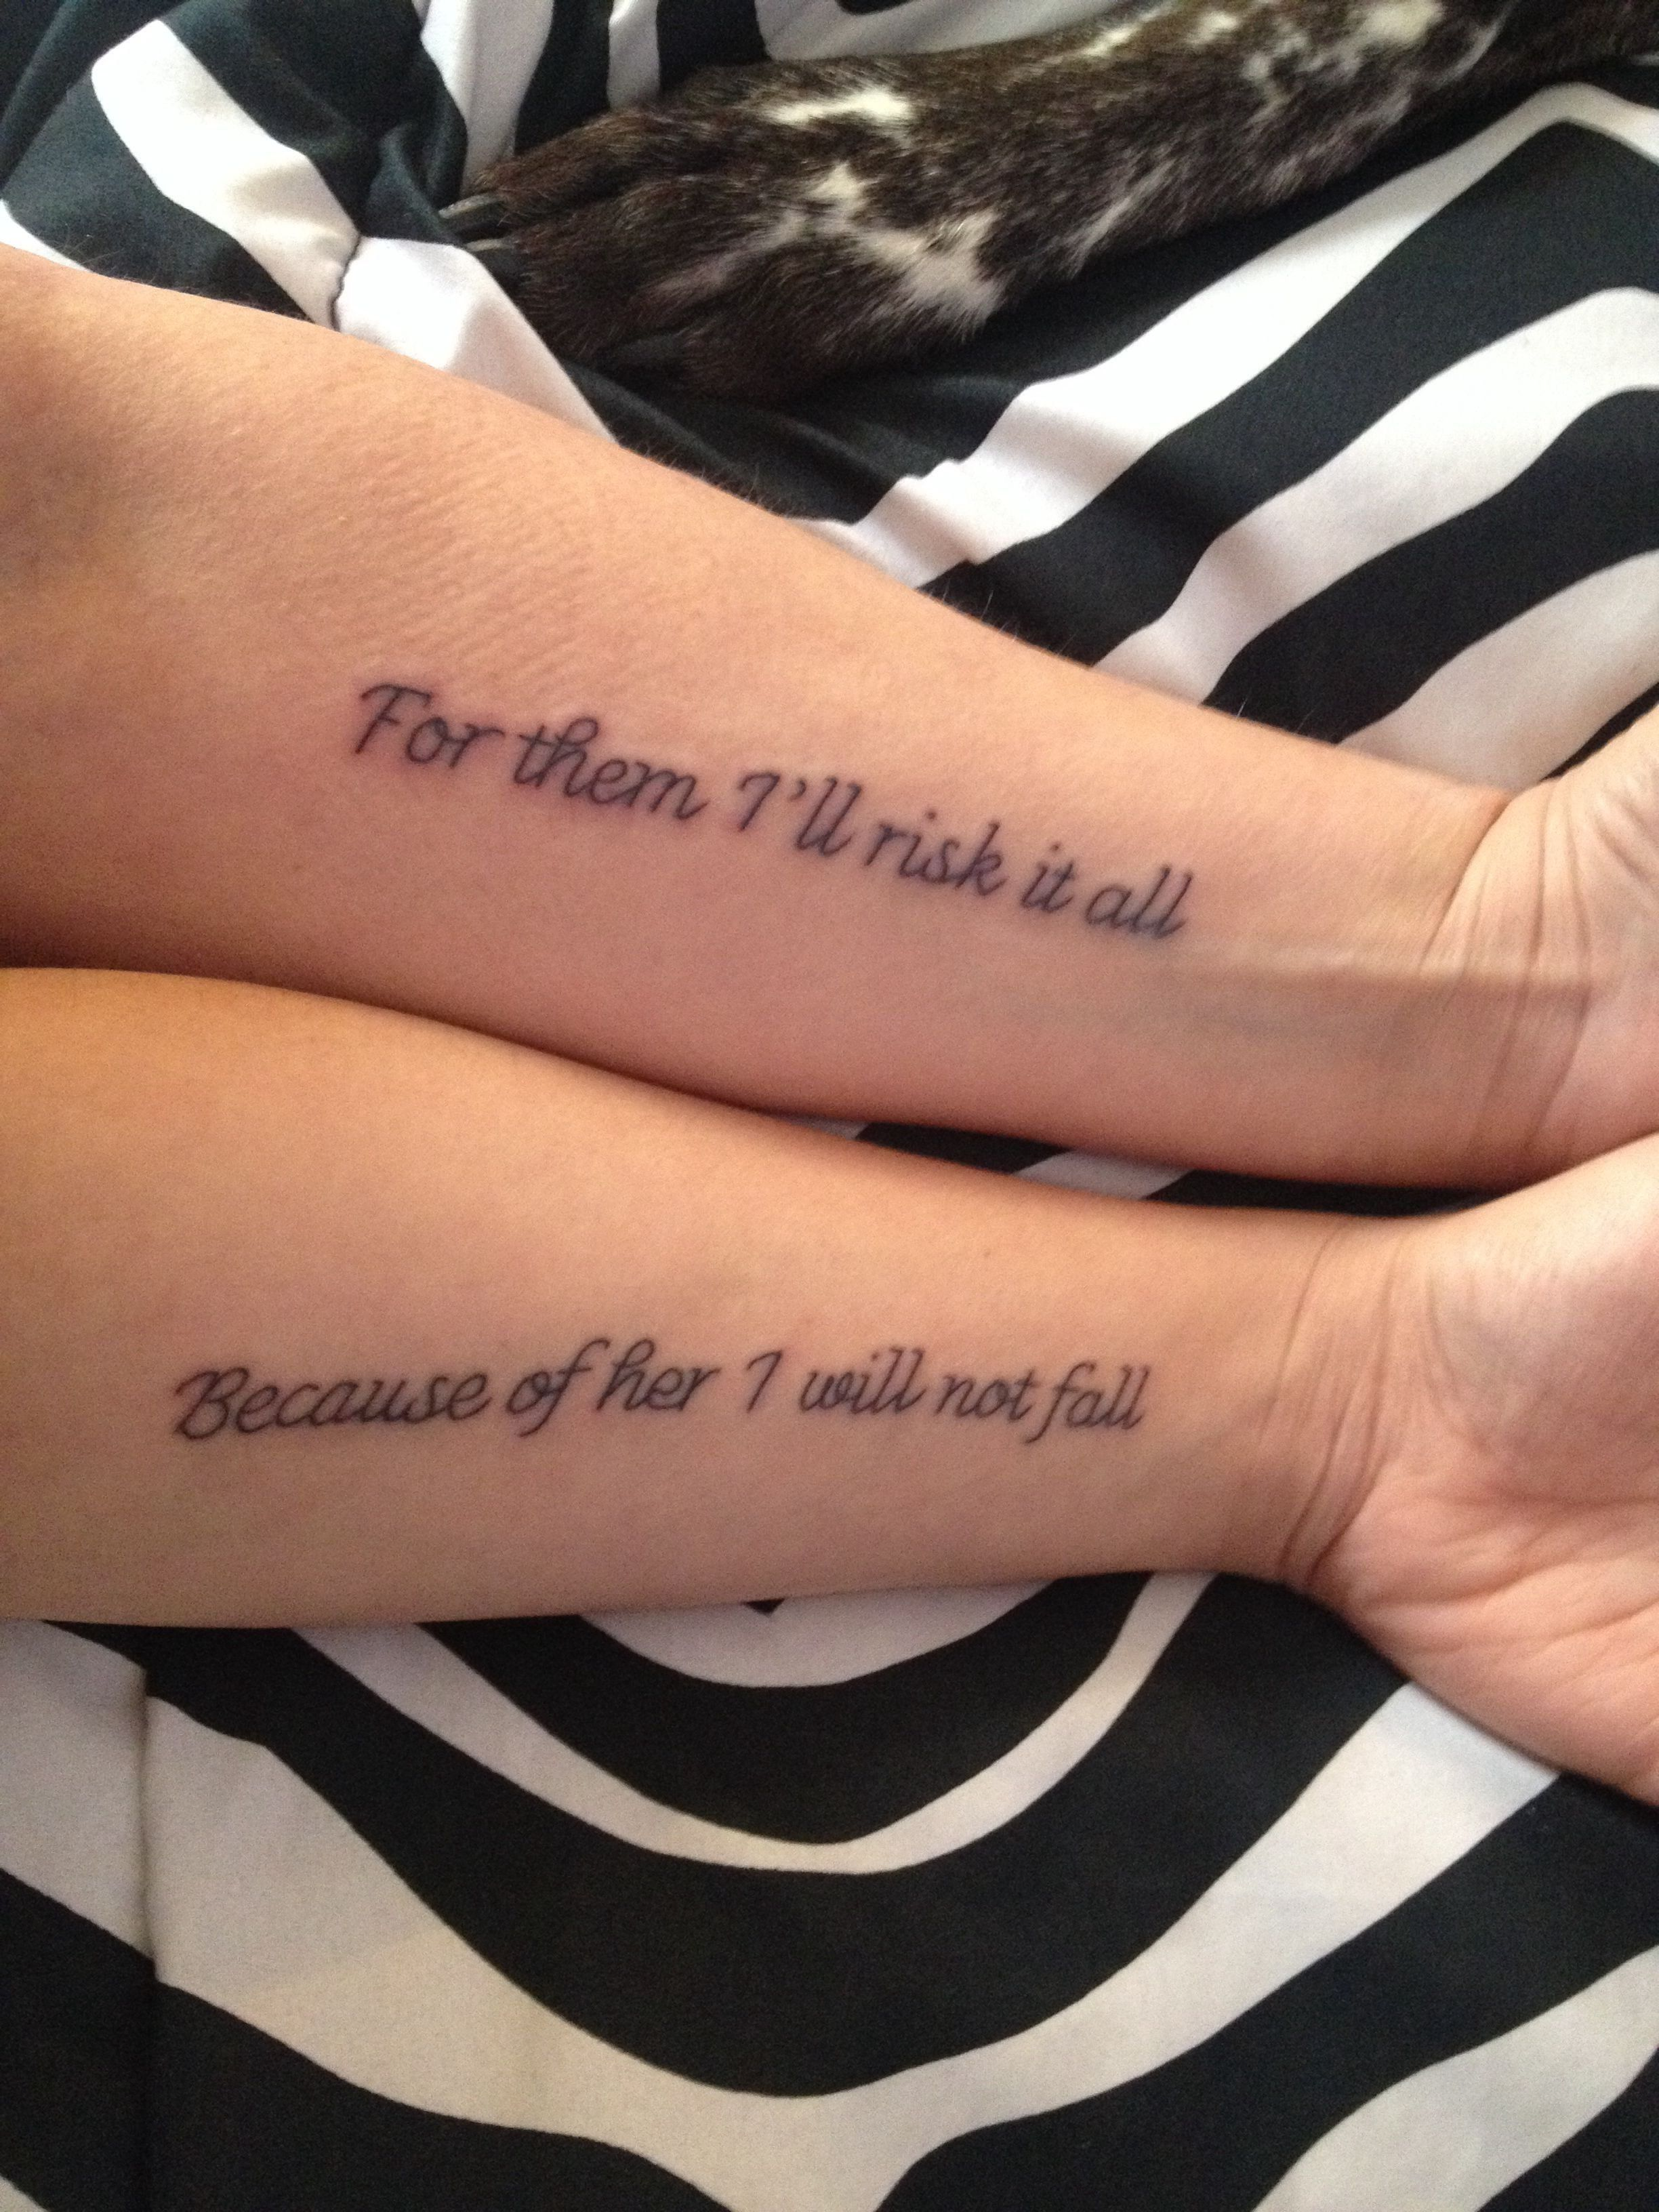 Mother Son Tattoo Ideas : mother, tattoo, ideas, Beautiful, Mother, Tattoos, Ideas, Pretty, Daughter, Tattoo, Designs, Daughters,, Tattoos,